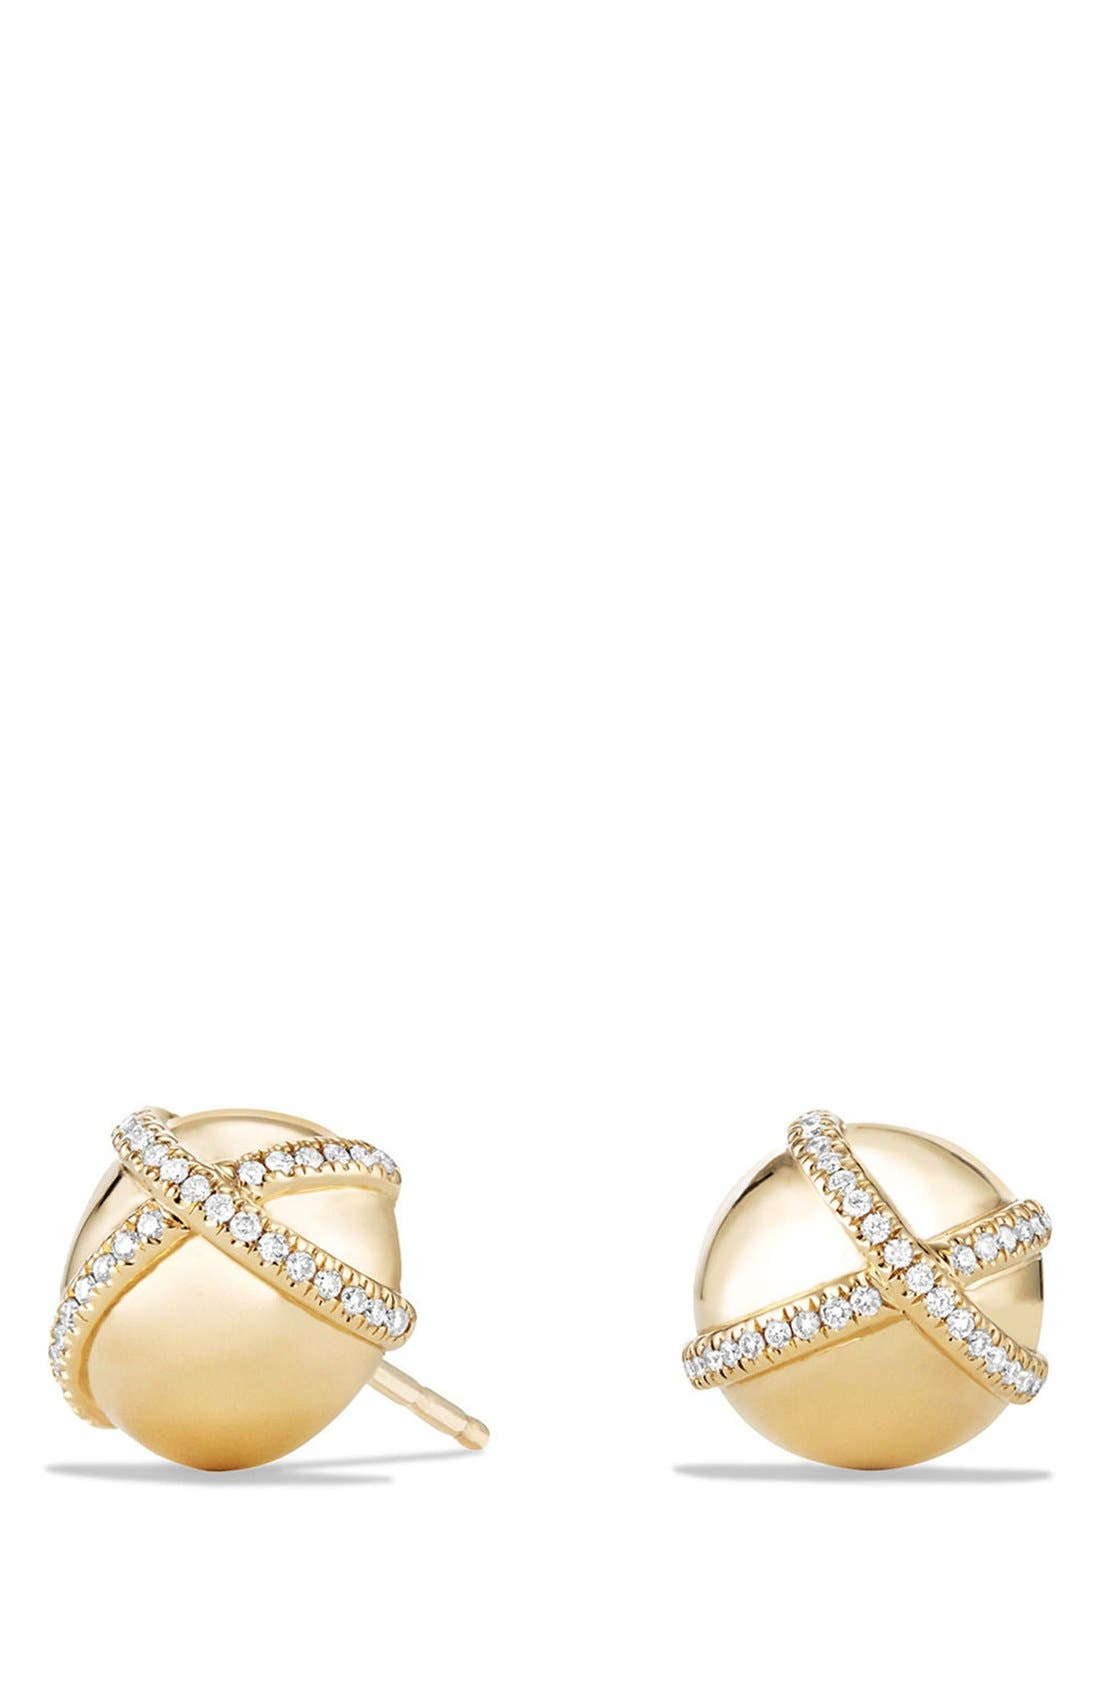 DAVID YURMAN Solari Wrap Stud Earrings with Pavé Diamonds in 18K Gold